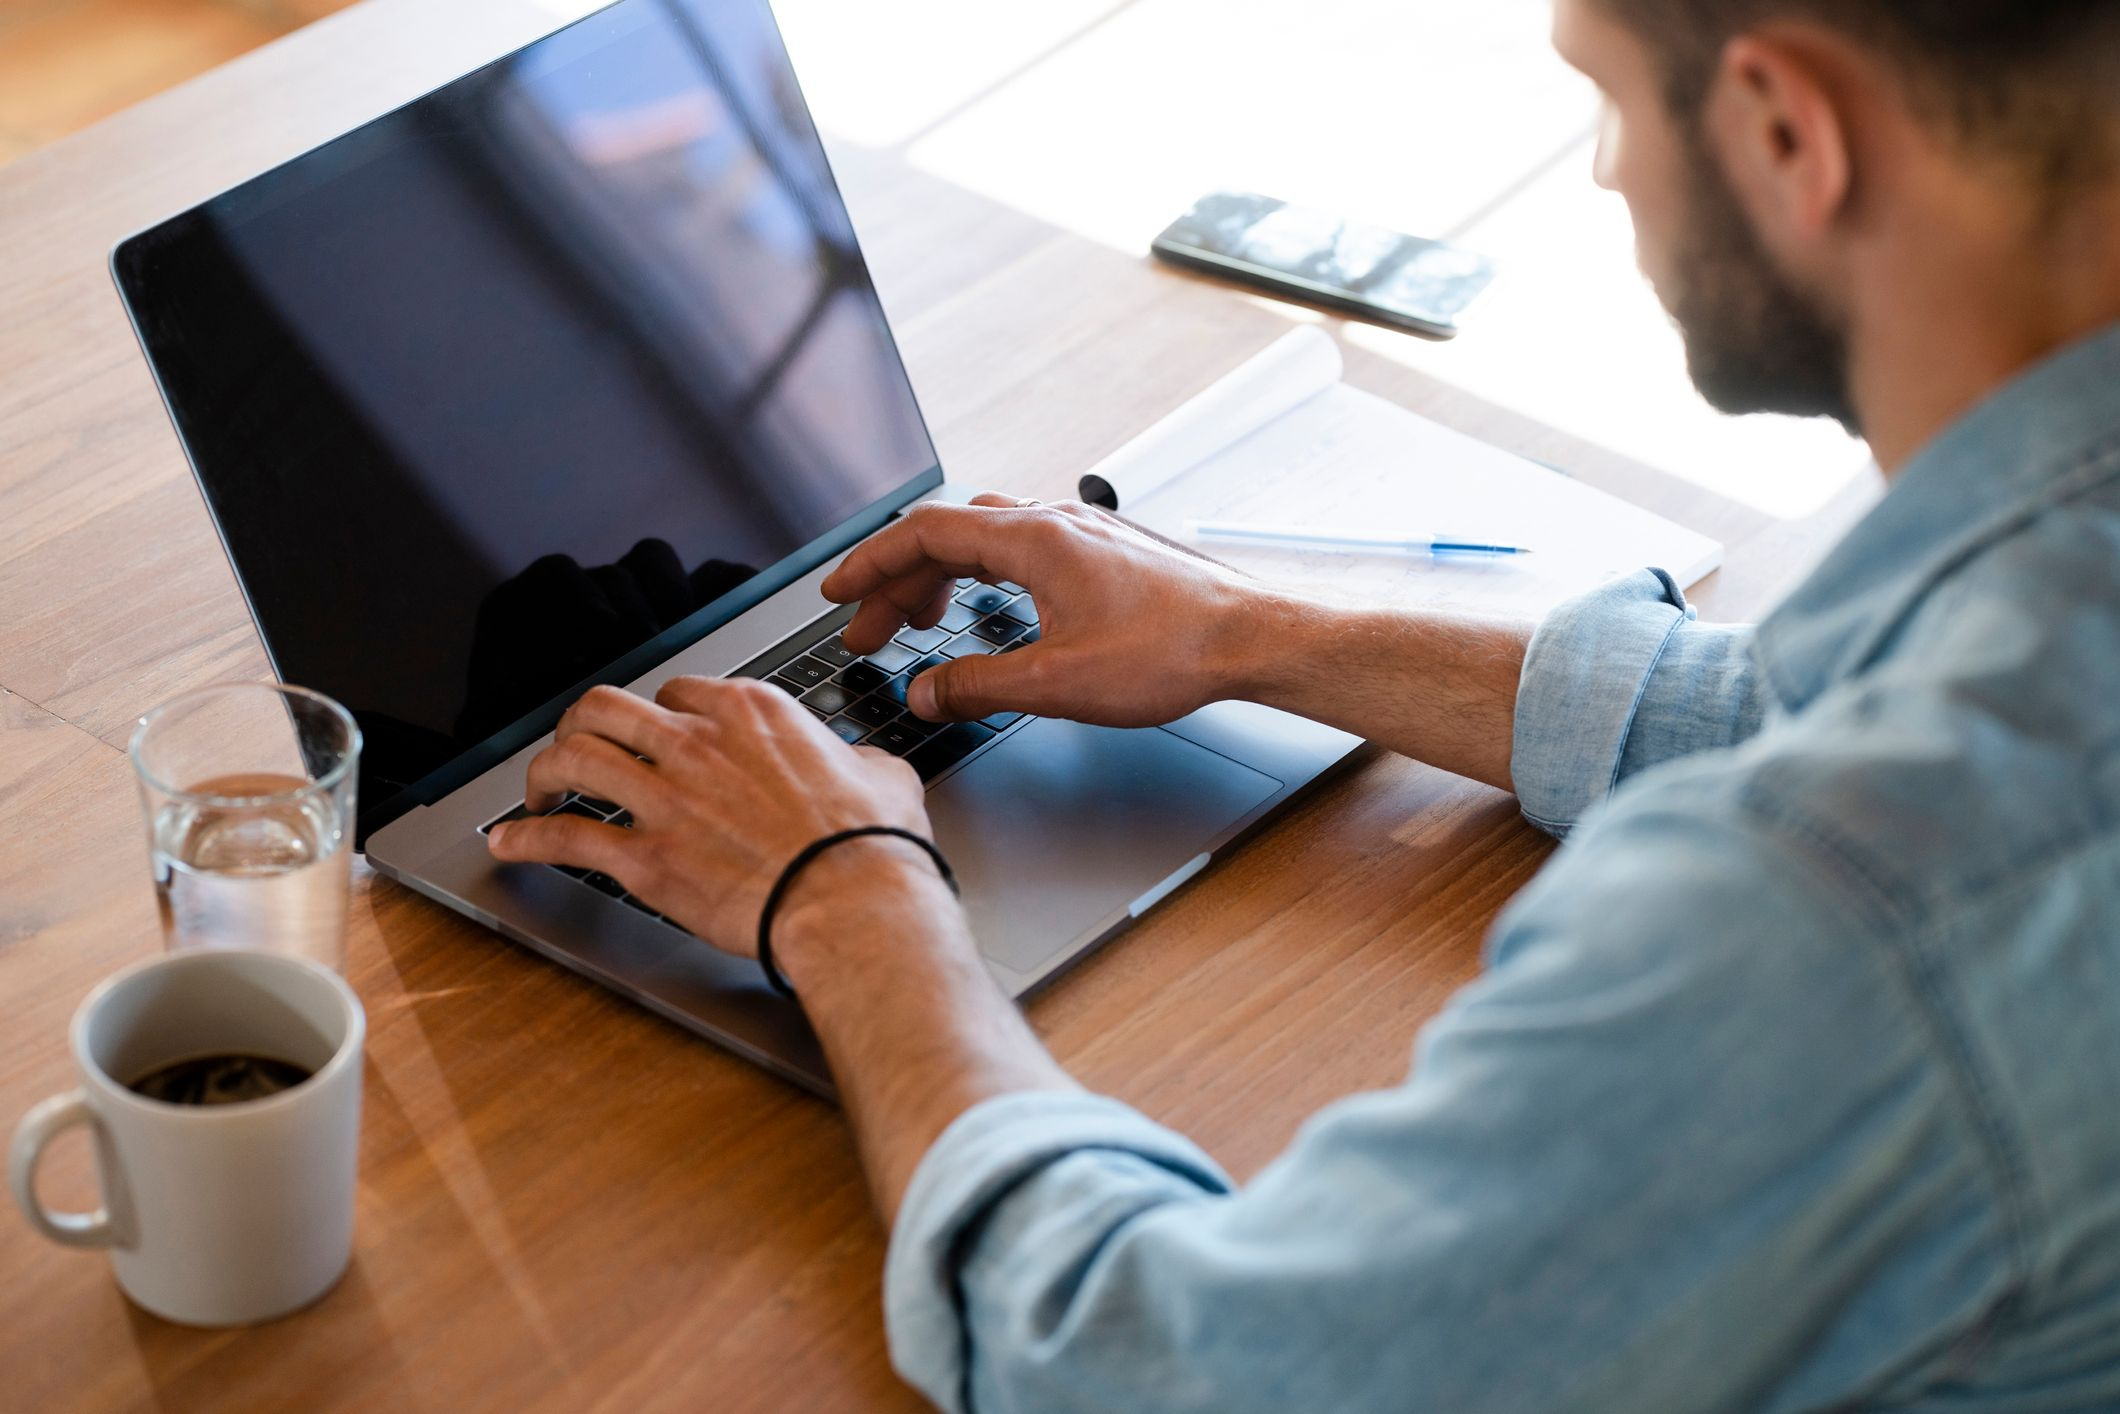 A man working on his laptop.   Source: Shutterstock